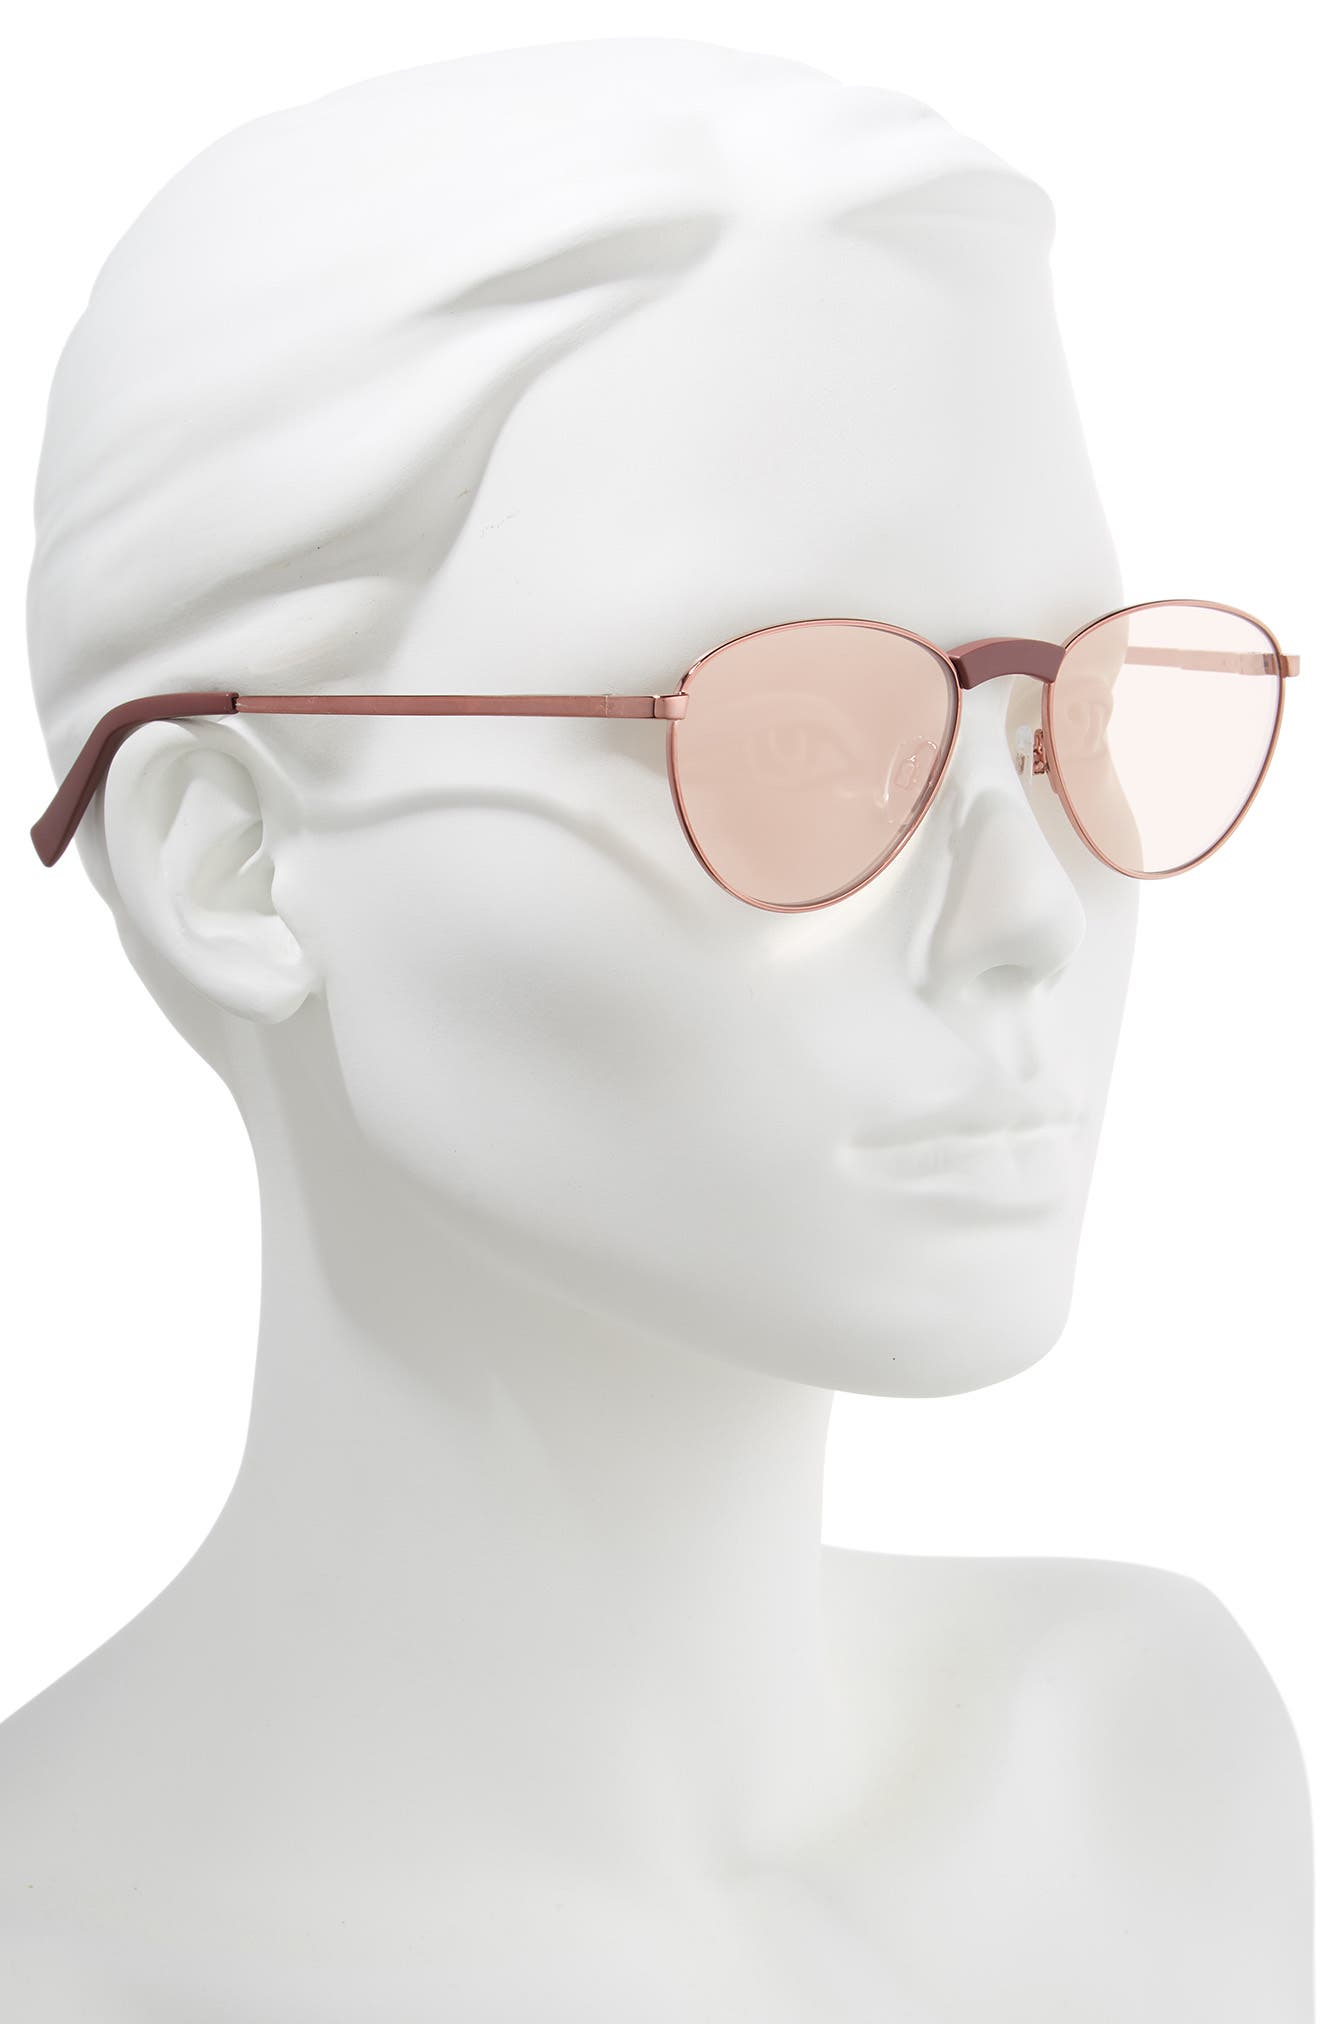 Hot Stuff 52mm Sunglasses,                             Alternate thumbnail 2, color,                             ROSE BROWN